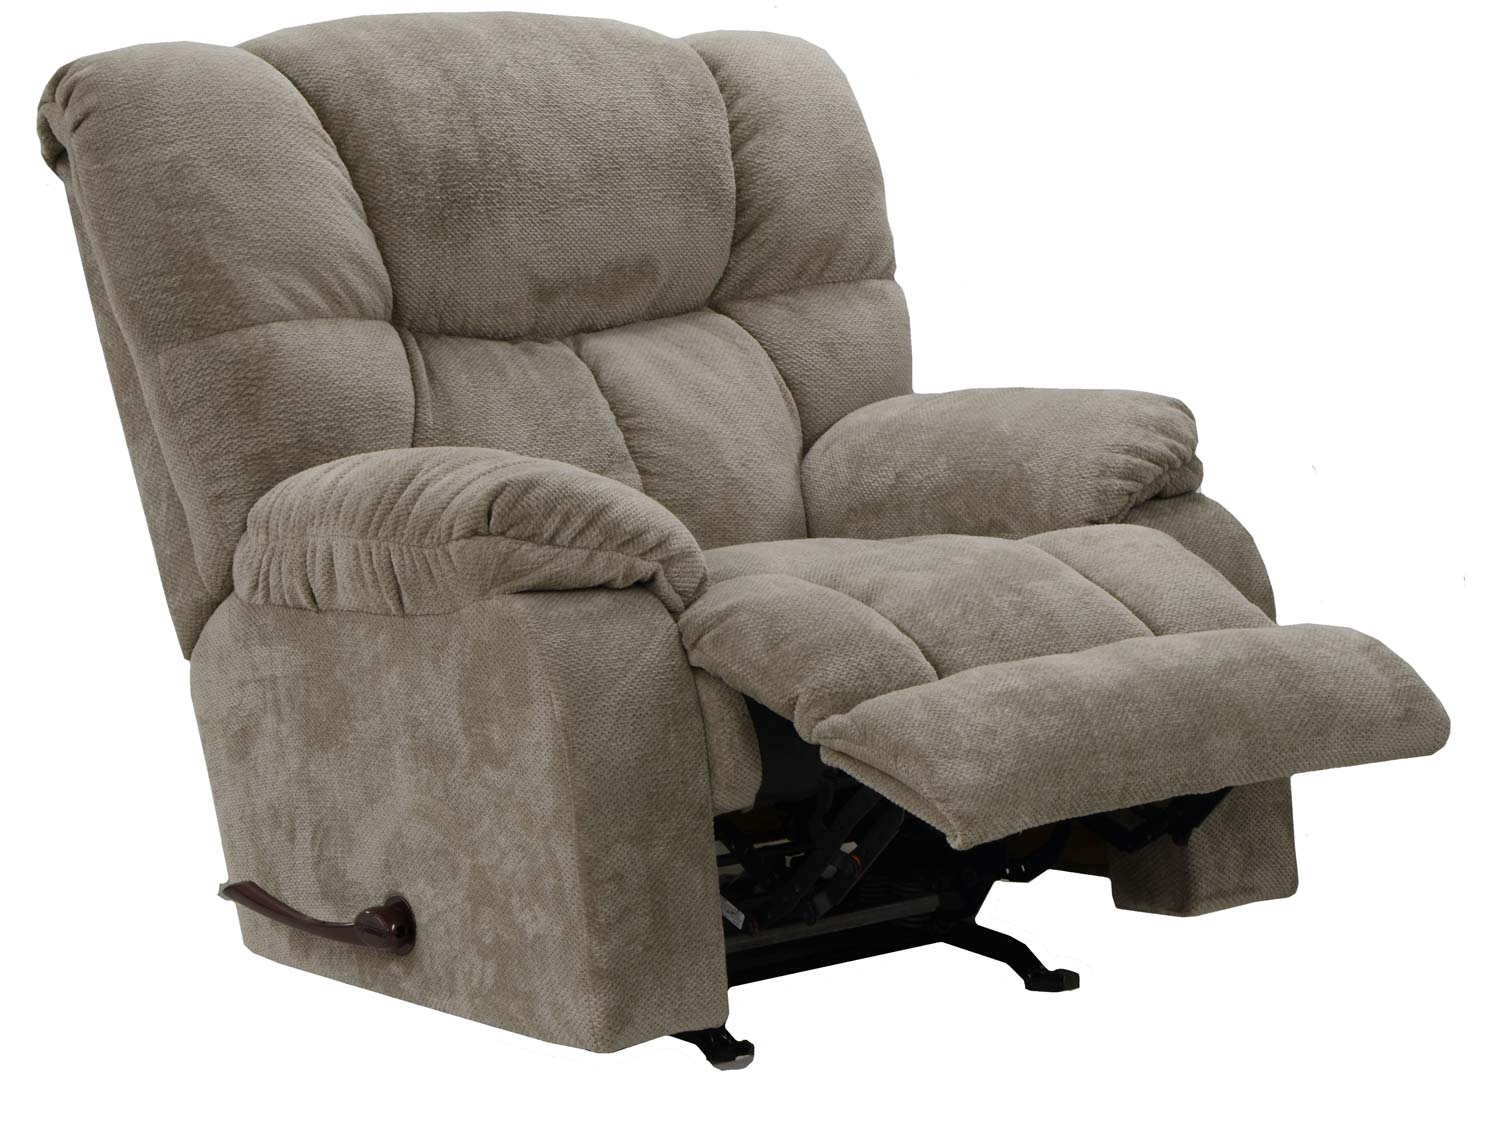 Catnapper popson x tra comfort chaise rocker recliner for Catnapper chaise